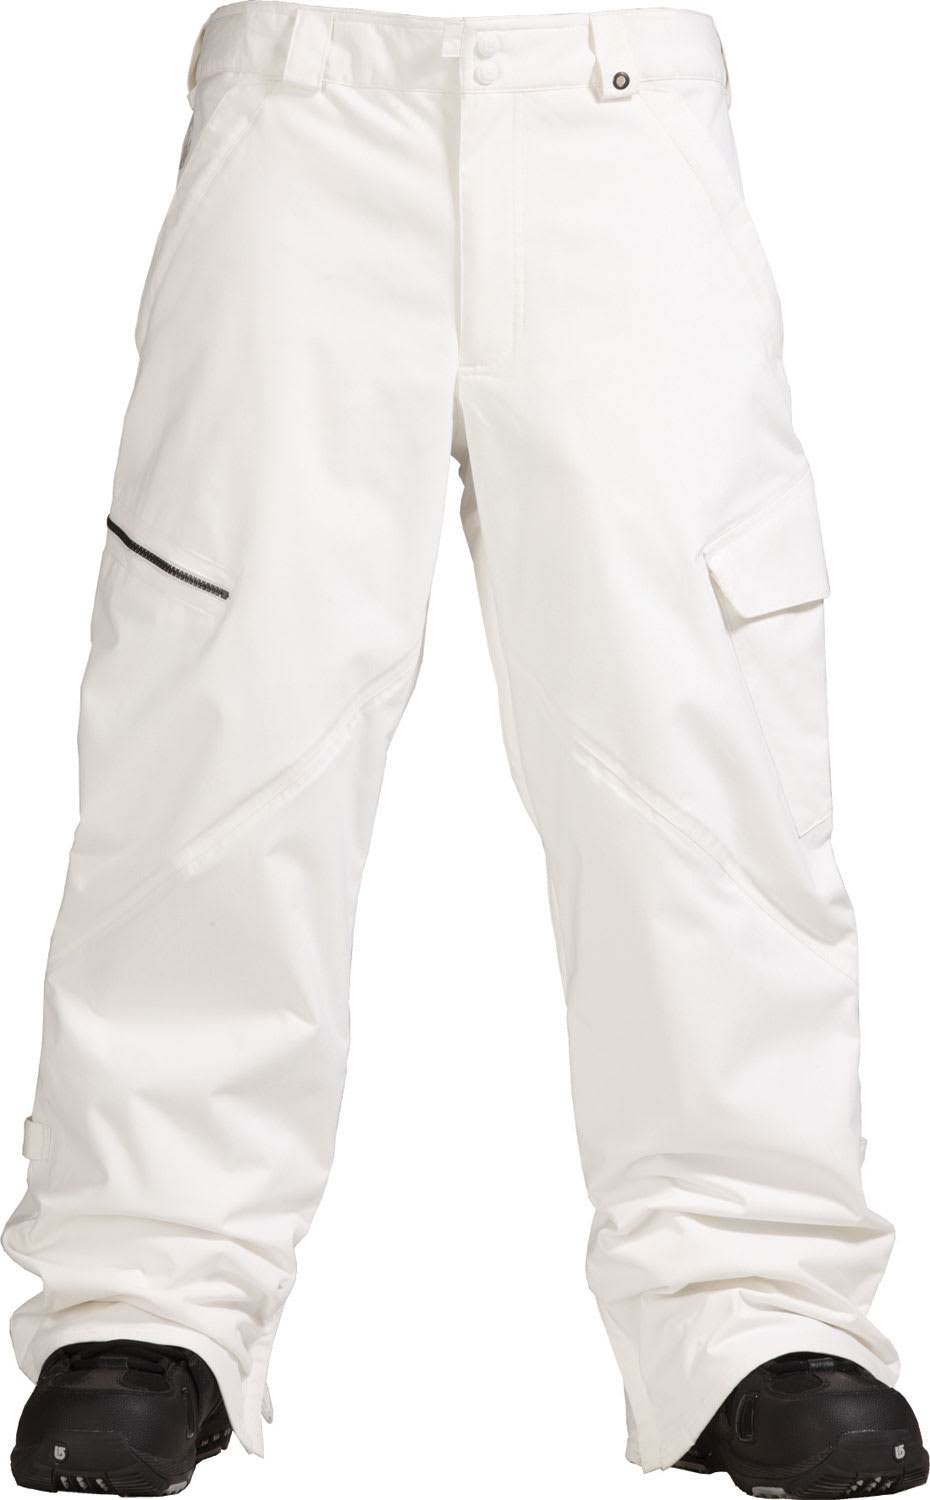 Shop for Burton Restricted Bates Cargo Snowboard Pants Bright White - Men's